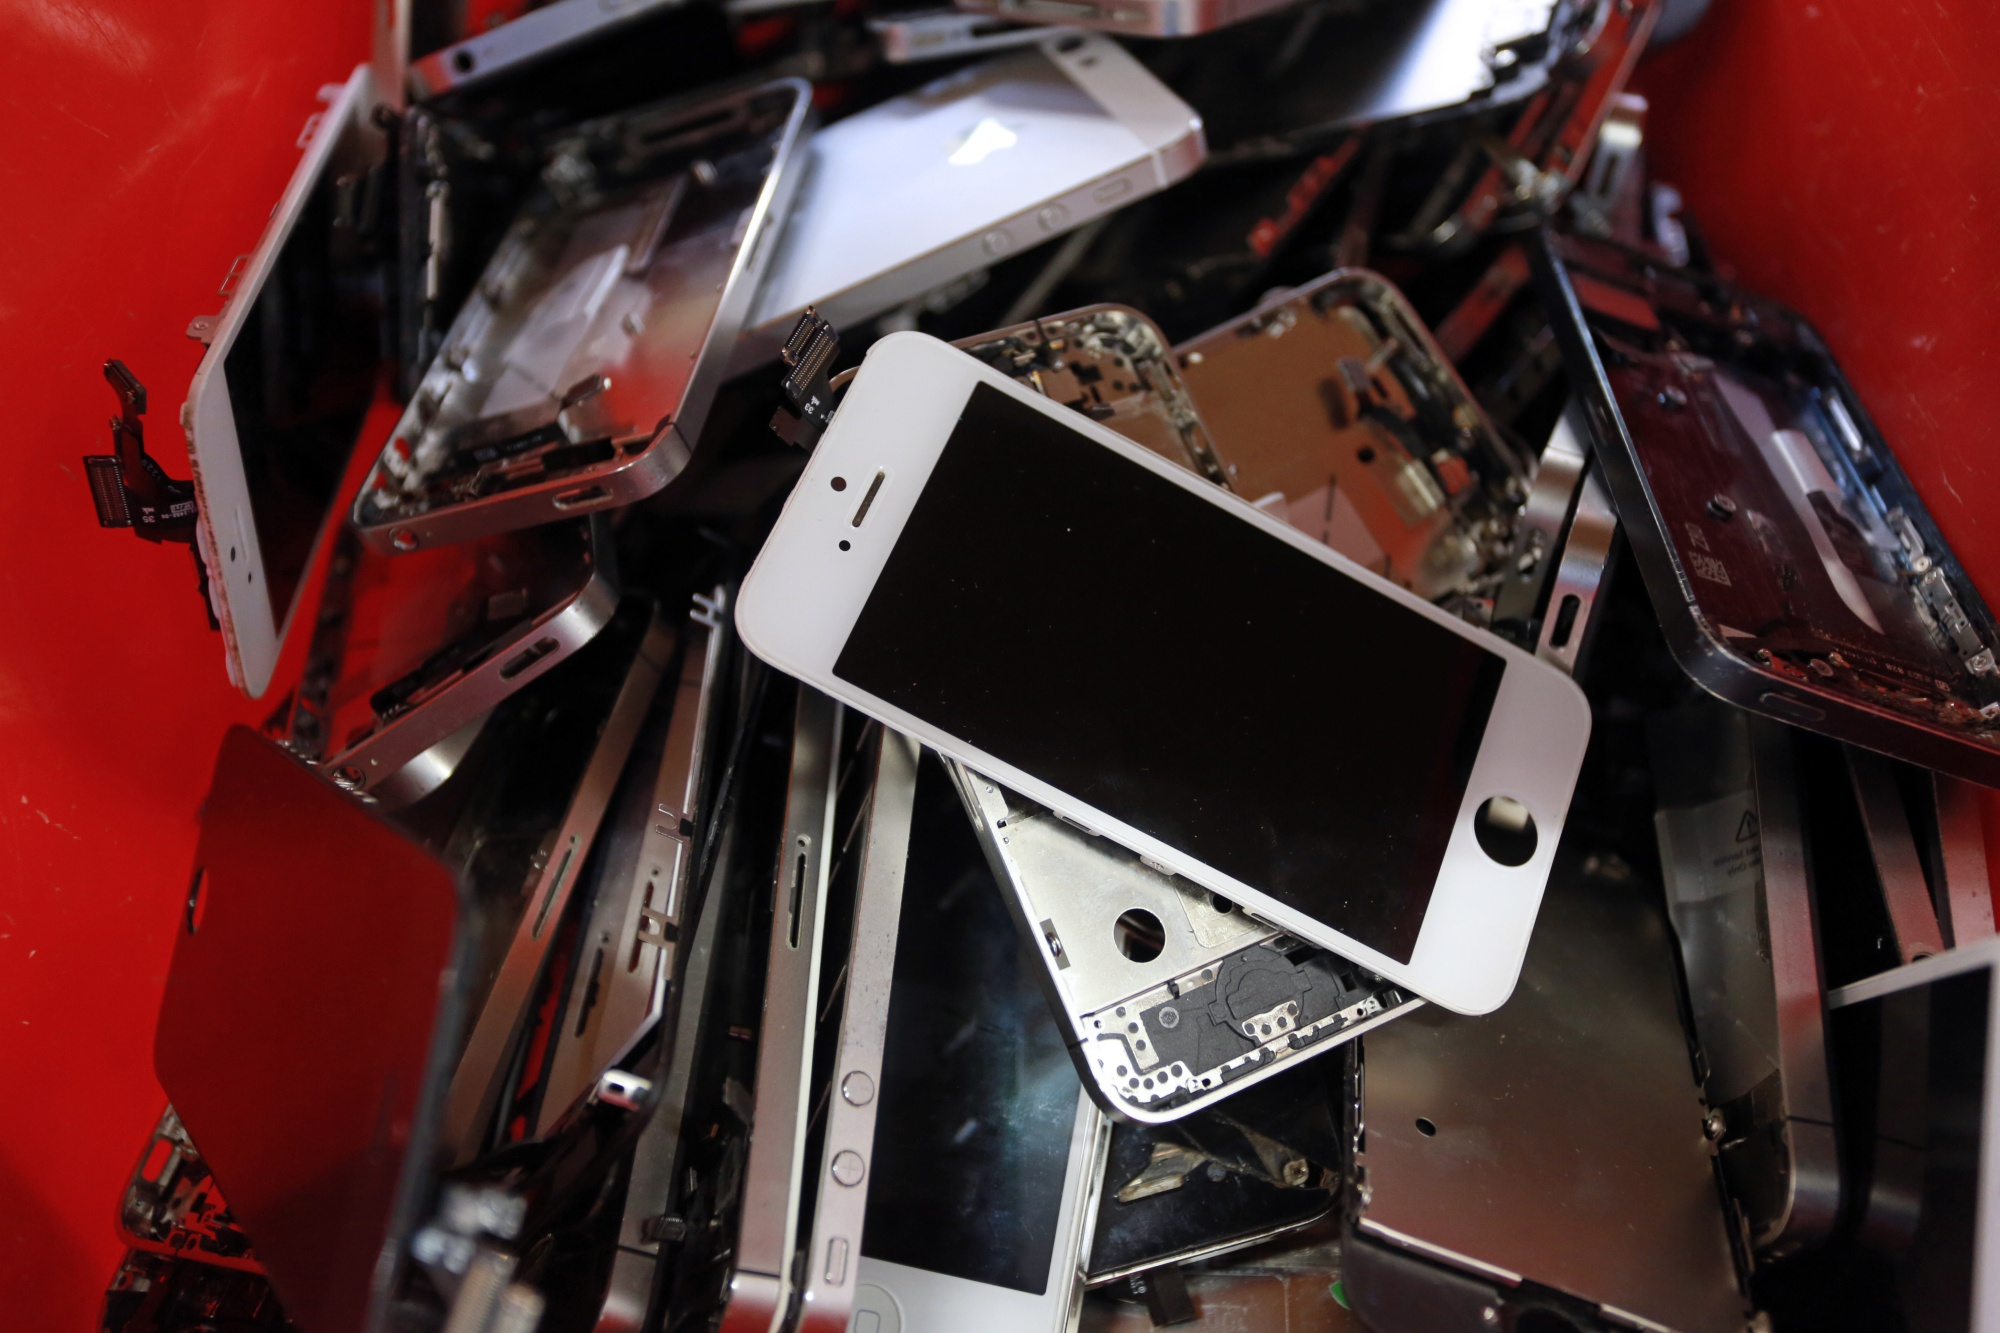 Banning Us Used Smartphone Exports Wont Fix Security Threat Automotivepictures 4163321997sc1alternatorwirediagram1jpg Bloomberg